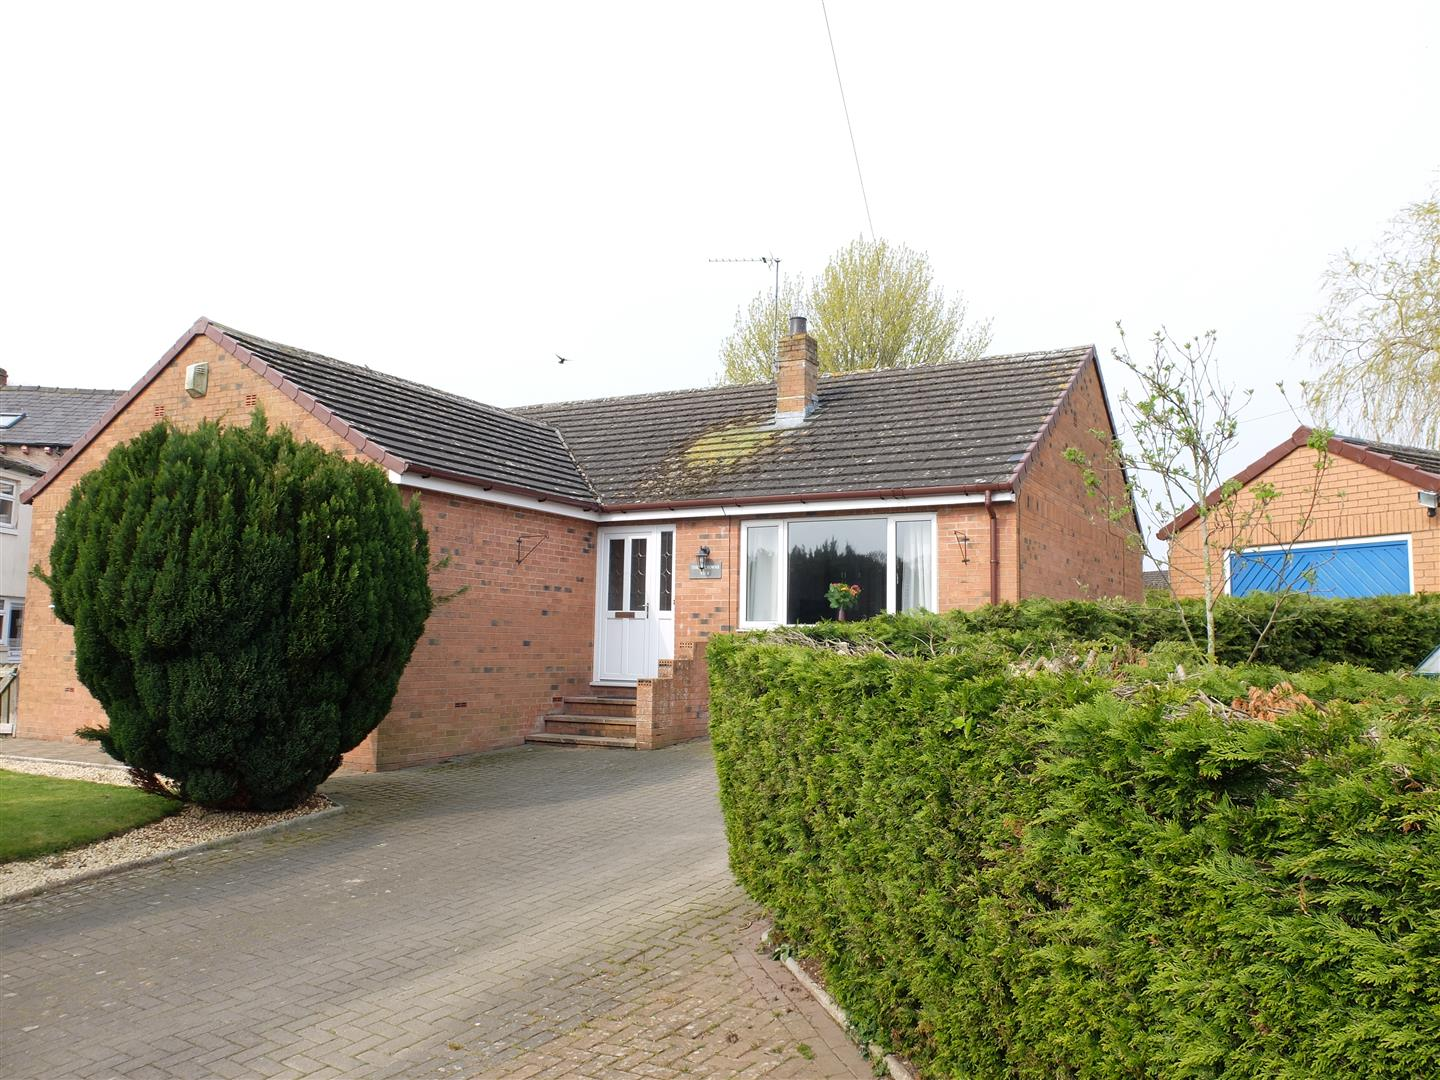 3 Bedrooms Bungalow - Detached For Sale